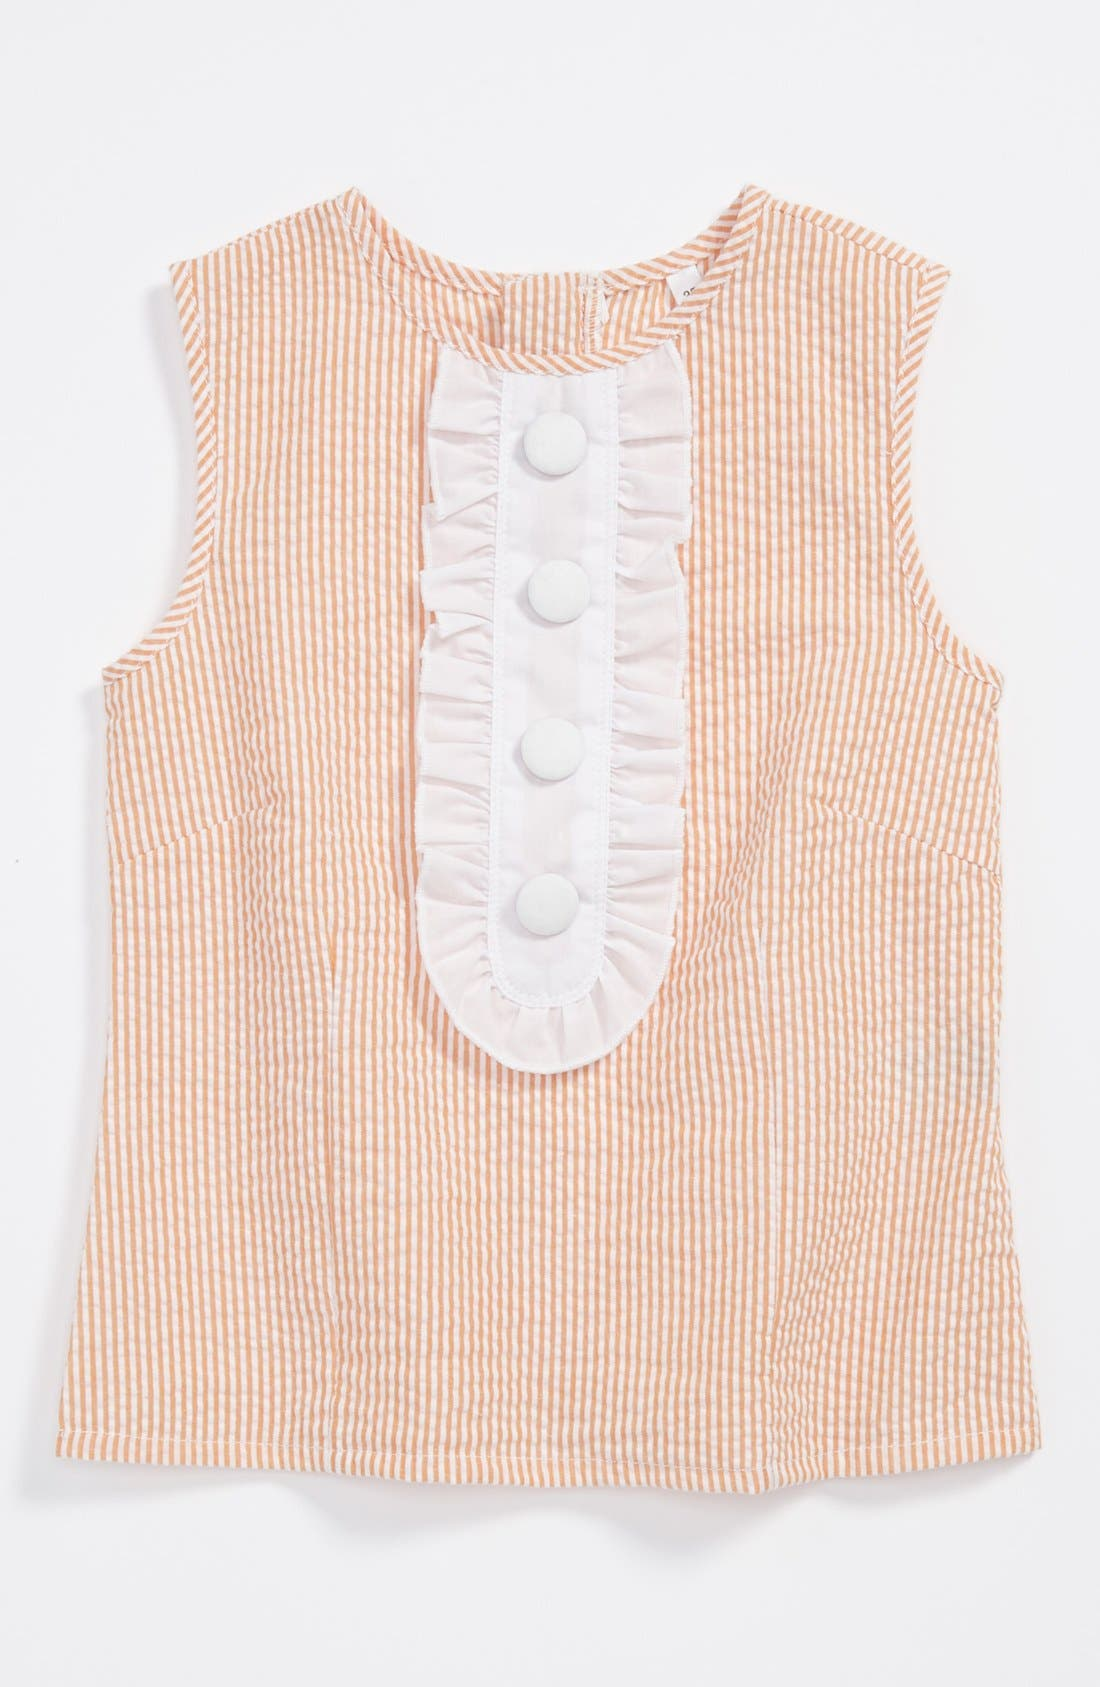 Alternate Image 1 Selected - gingham by Sovereign Code 'Mandy' Top (Toddler Girls)